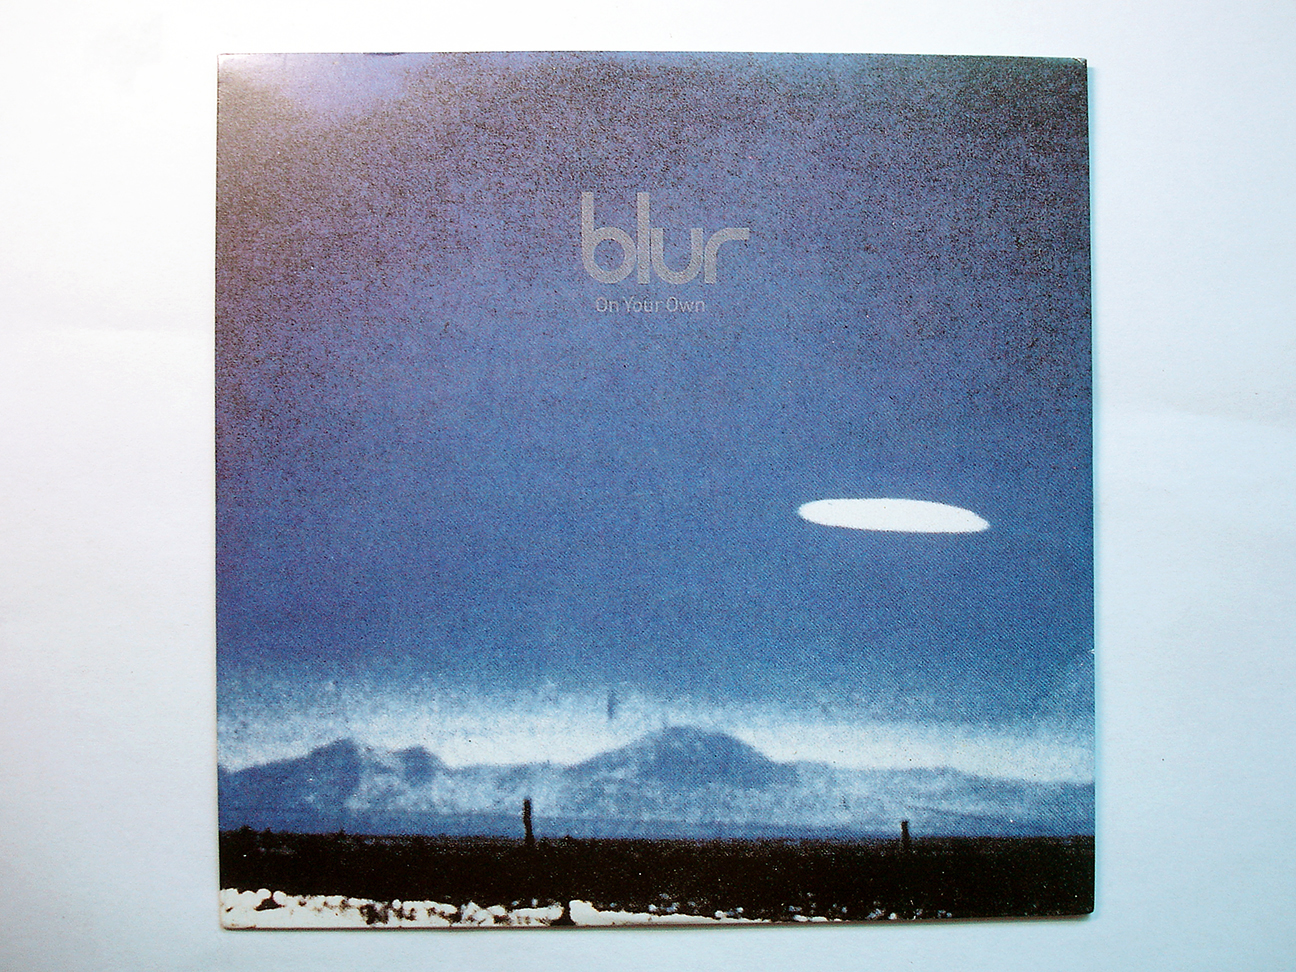 (ep) On Your Own - Blur